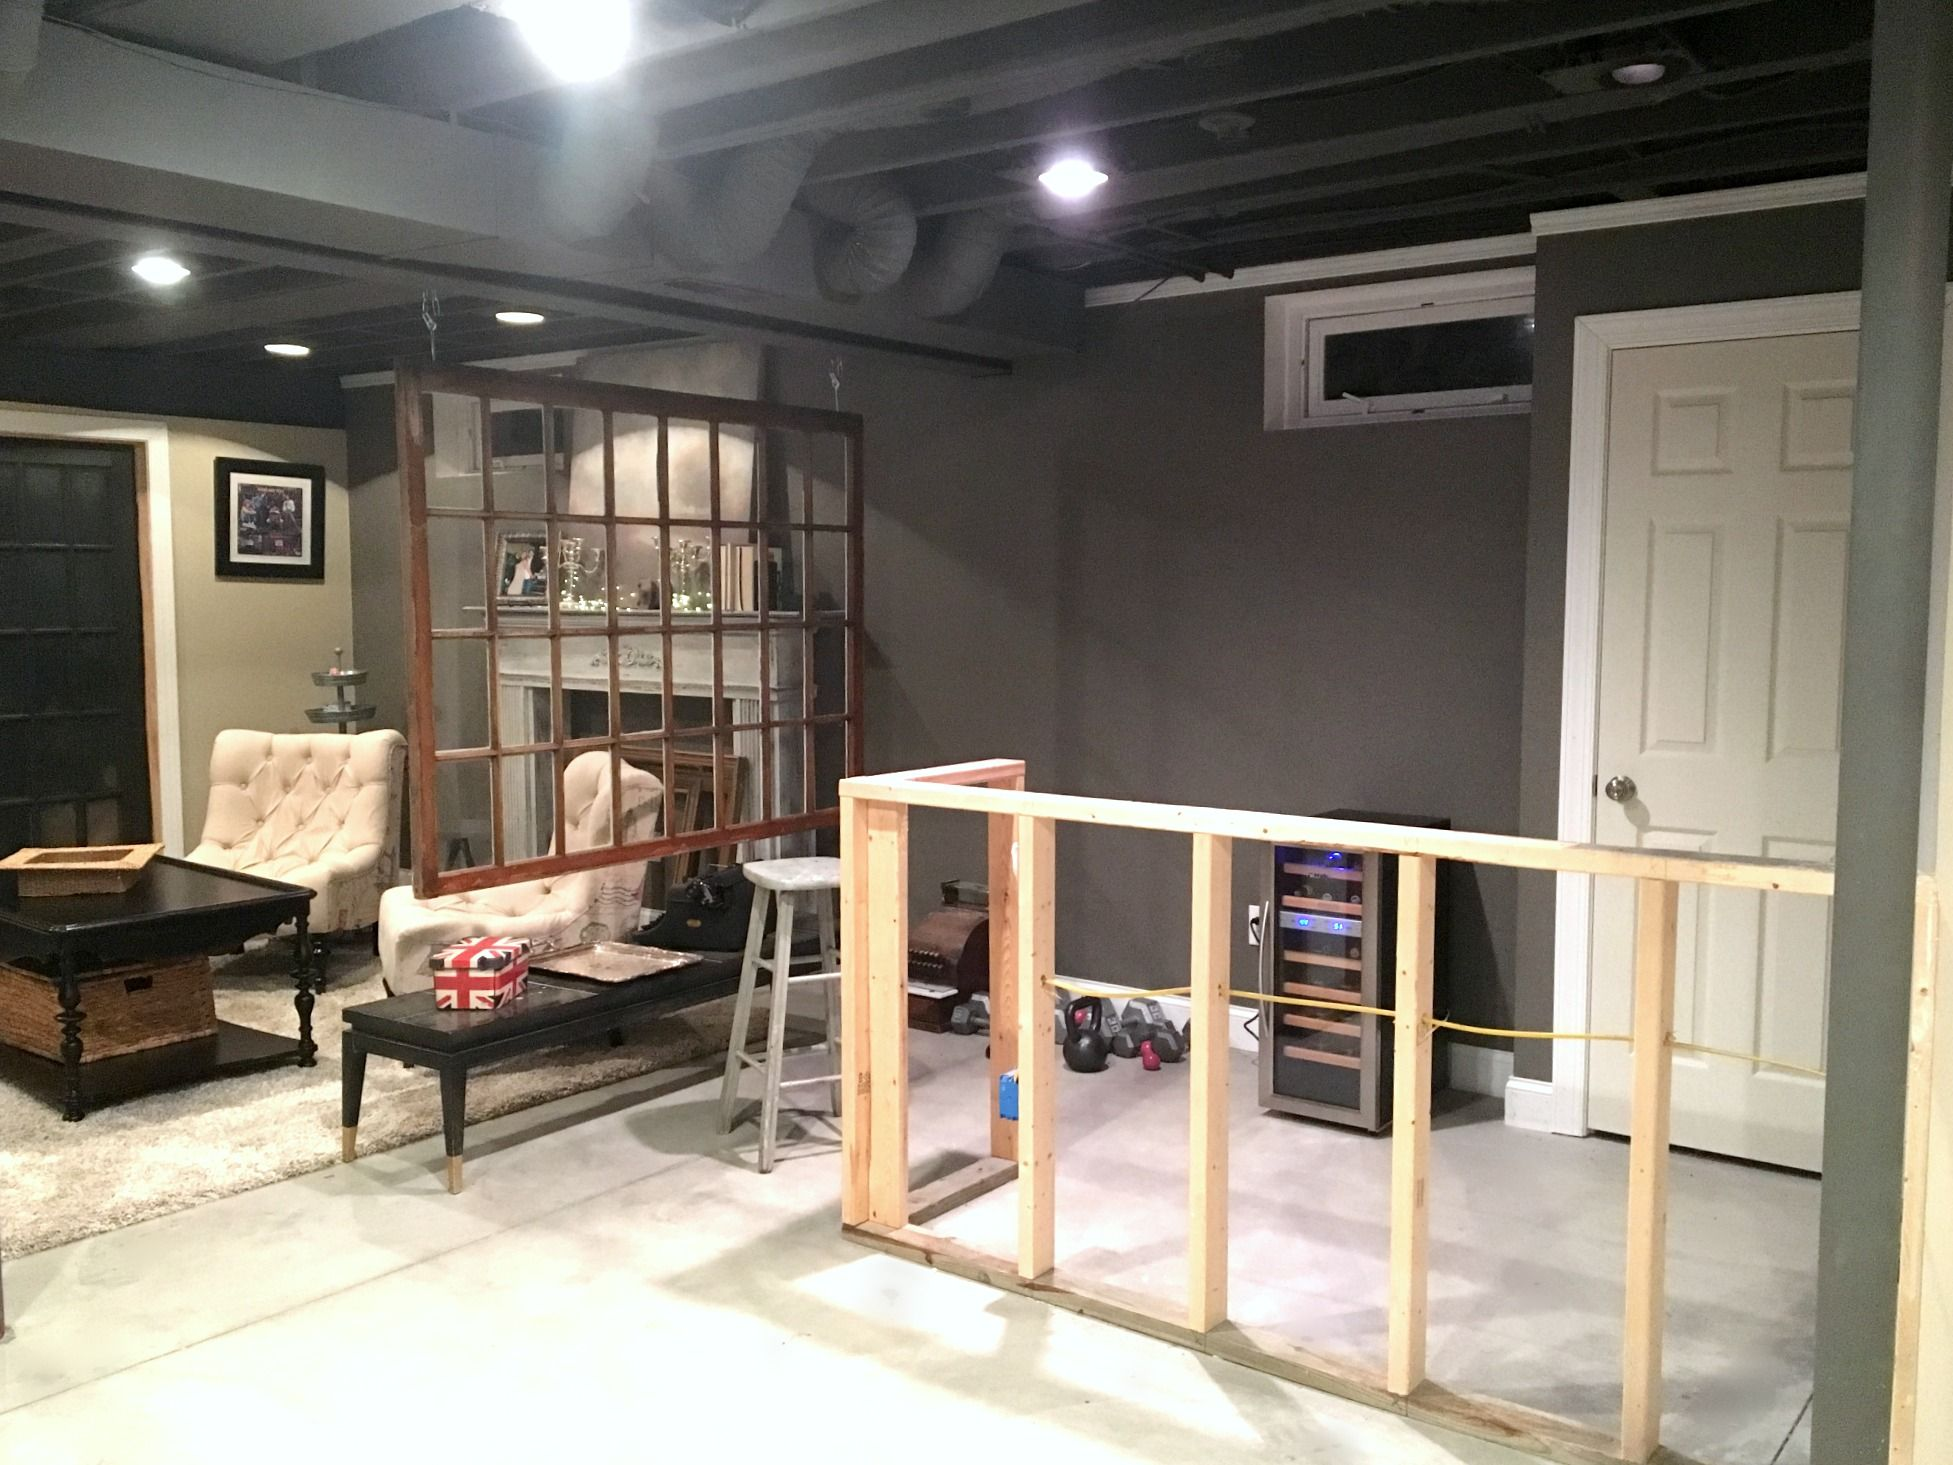 Diy Decor Industrial Basement Remodel Basement Remodeling